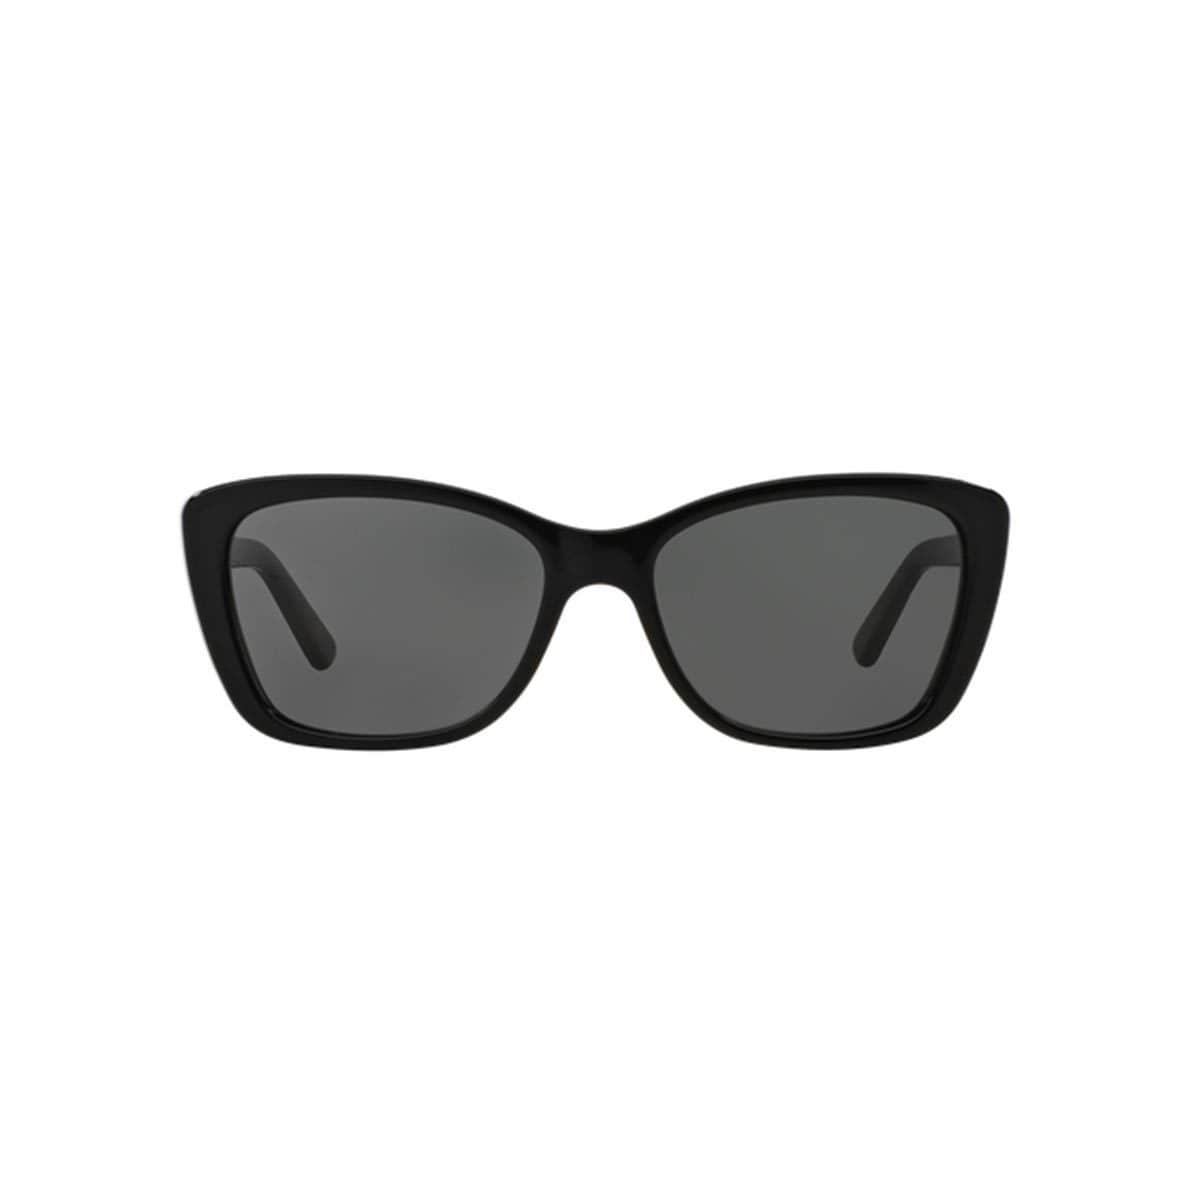 e23cee009d Shop DKNY Women s DY4130 Black Plastic Cat Eye Sunglasses - Free Shipping  Today - Overstock.com - 10857198